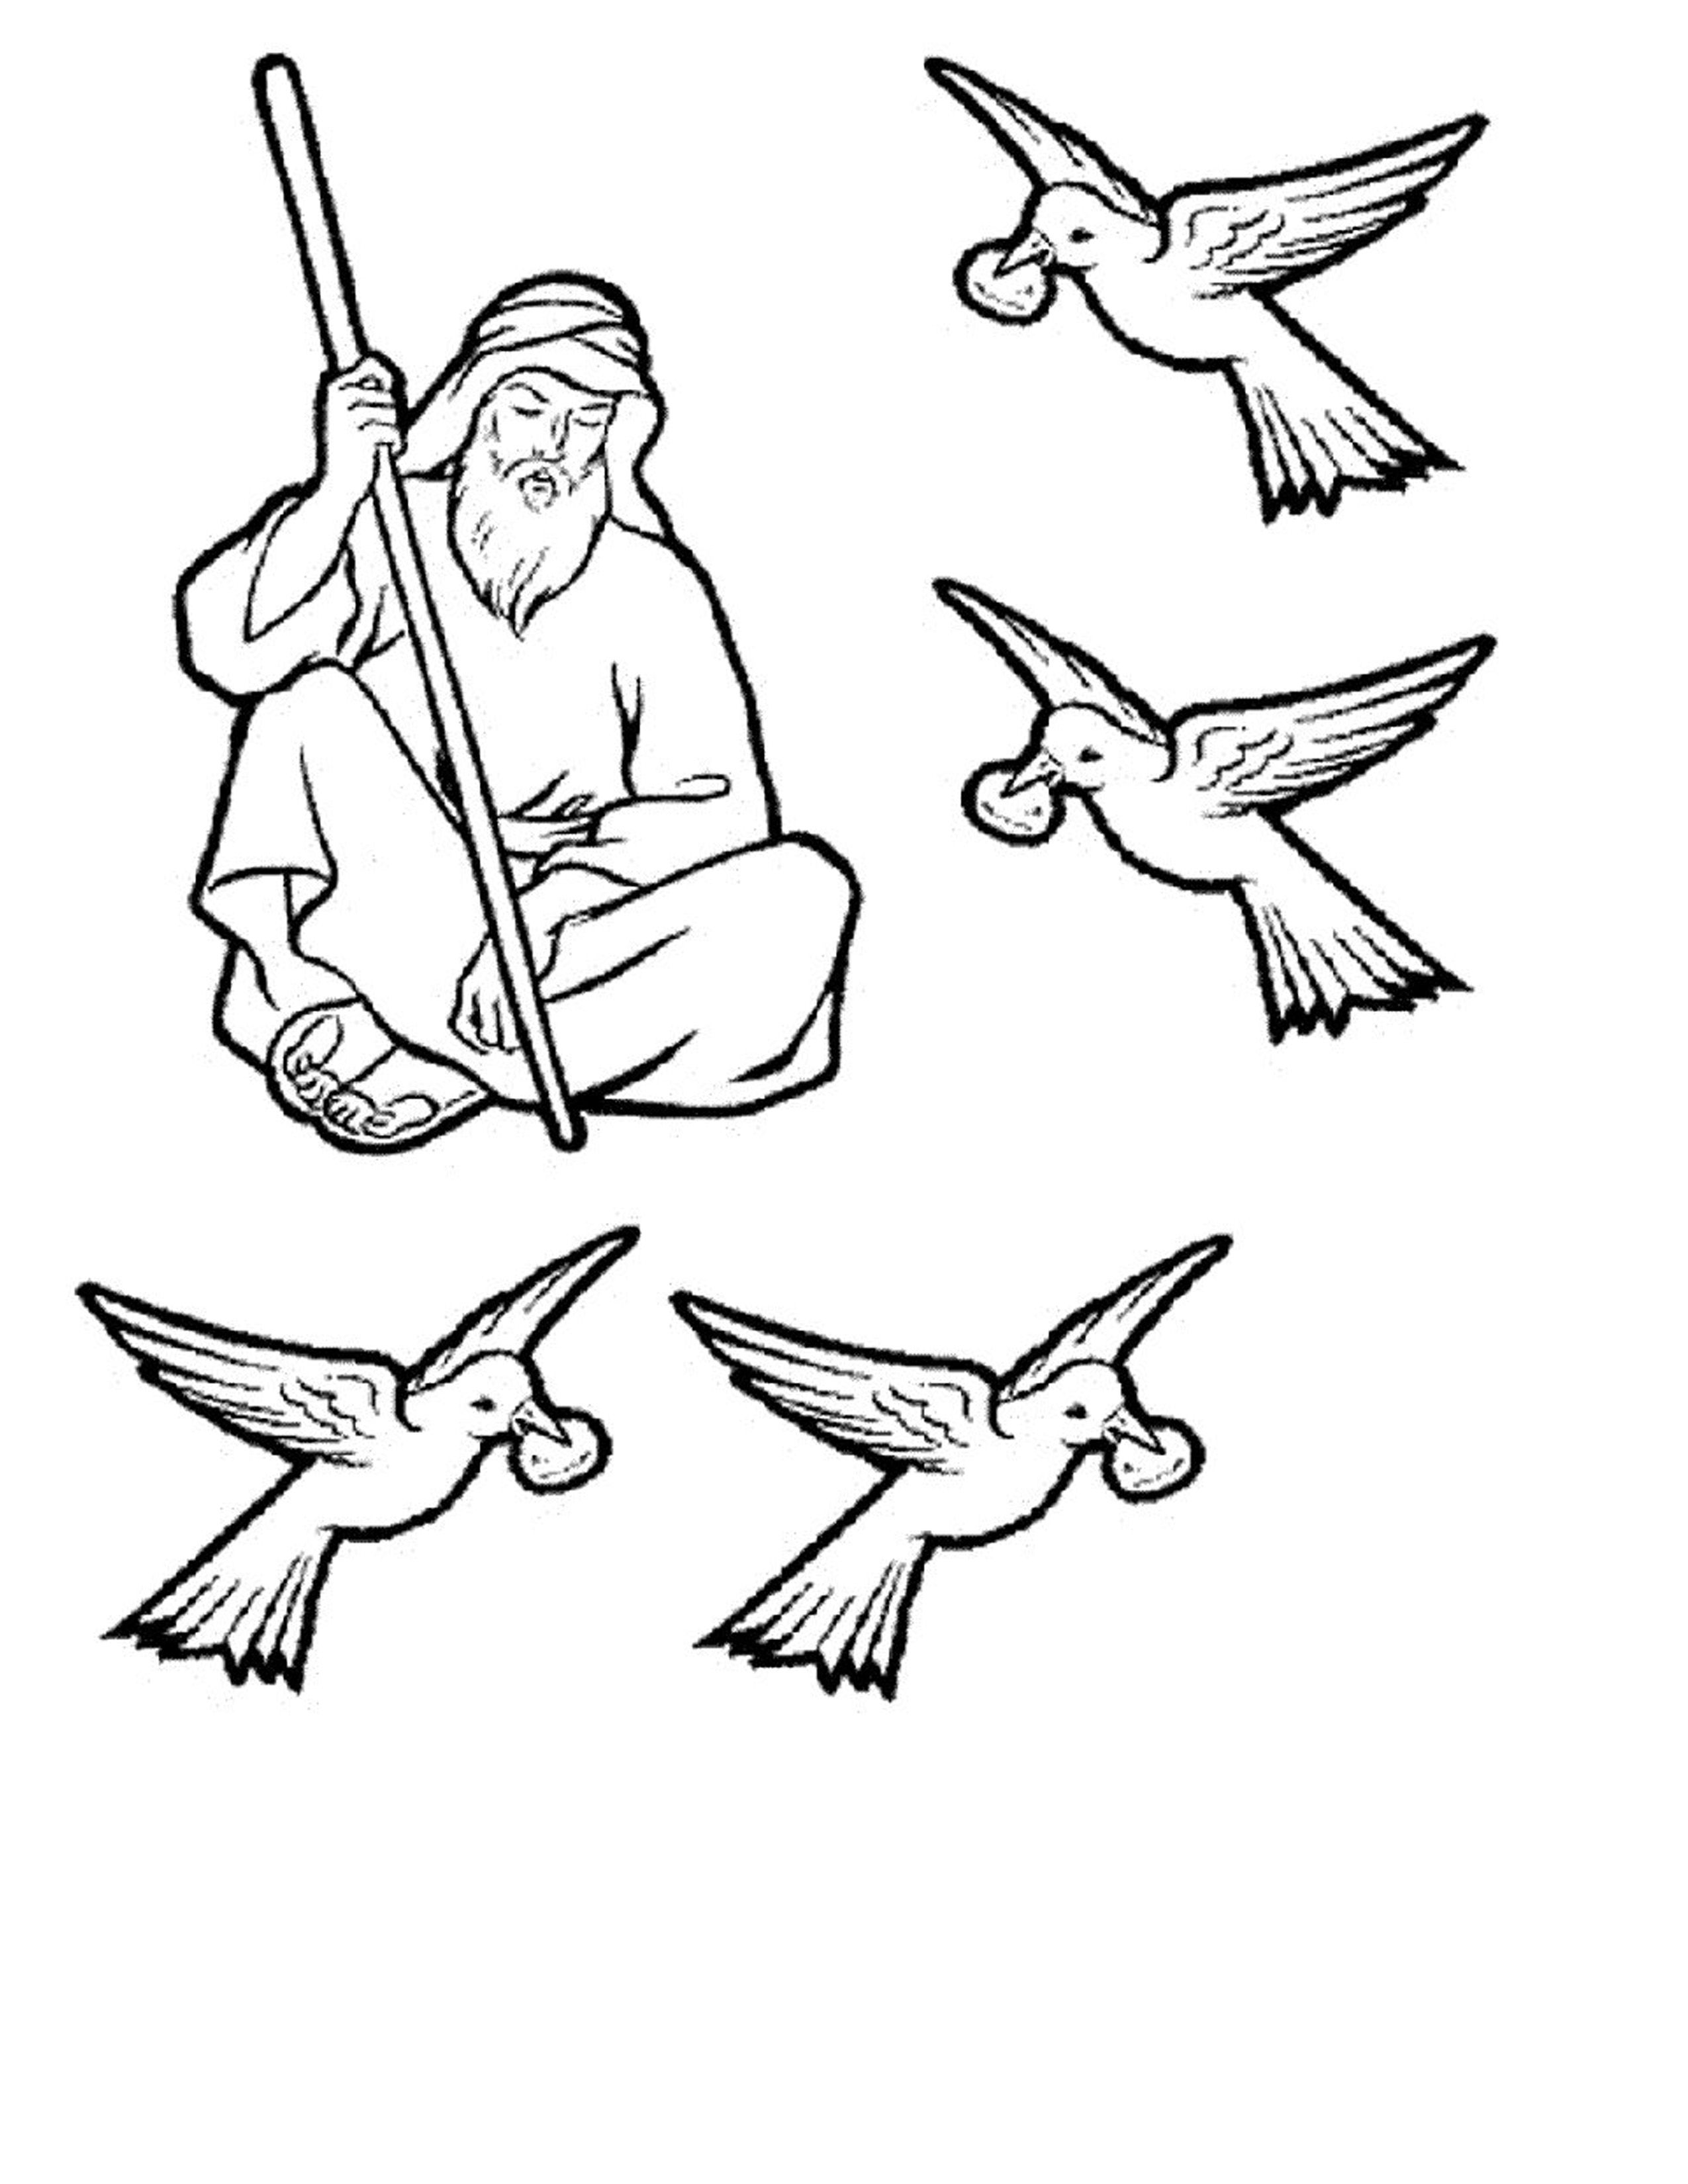 Elijah And The Ravens Bible Crafts Bible School Crafts Bible Coloring Pages